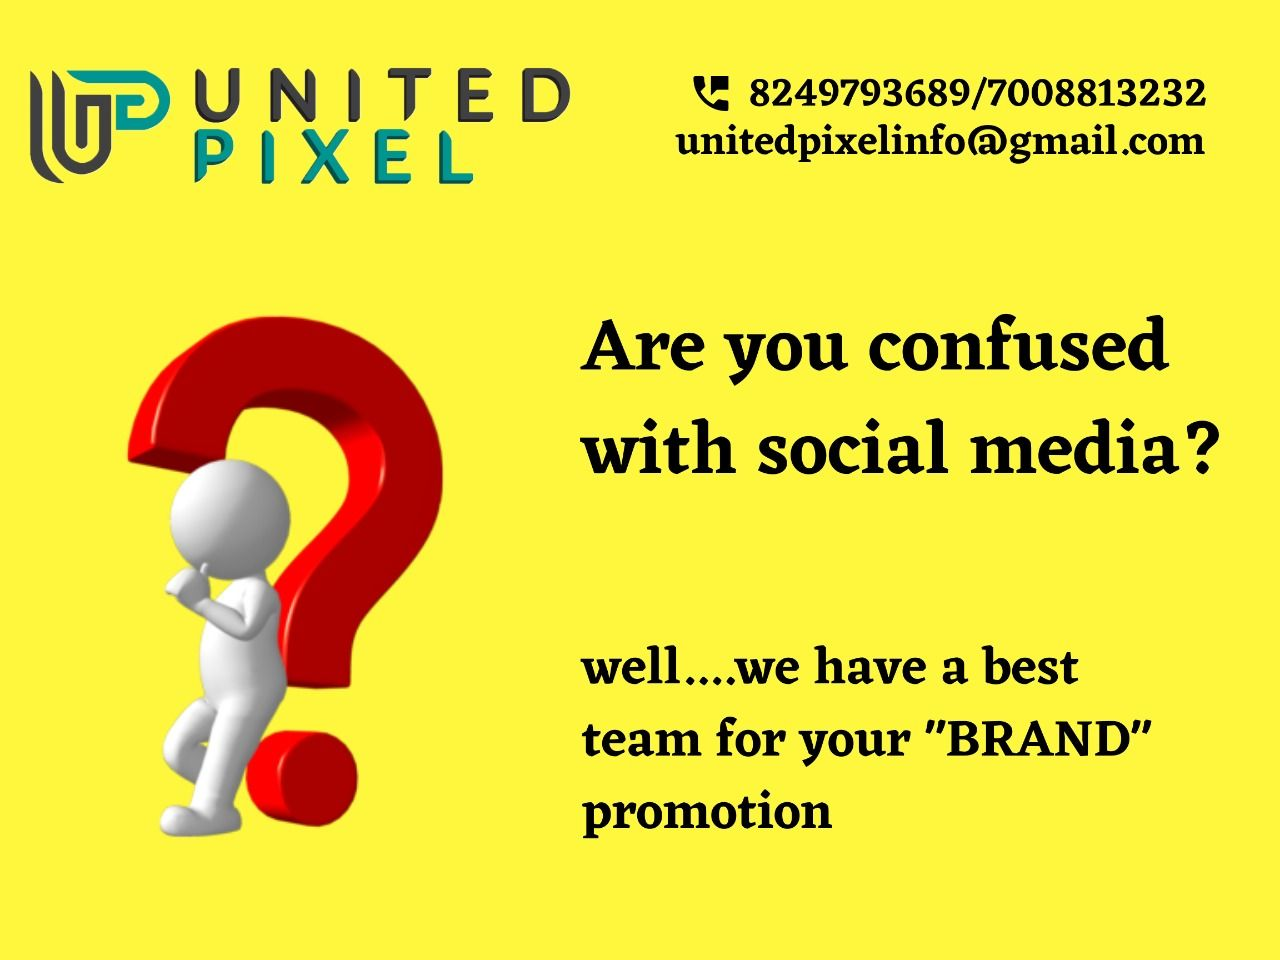 Worried for business🤔? Are you confused with social media promotion🤔?  Why so much worried for business promotion🤷🏻♀️!! Well, we have a best team for you business promotion😊!  Contact Today: 📞8249793689 | 📞7008813232  #business #digitalart #digitalmarketing #postmedia #seo #smo #socialmedia #socialmediaagency #digitalmarketingcompany #digitalindia #marketingtips #bhubaneswarbuzz #digitalmarketingtips #advertising #branding #developing #bhubaneswar #india